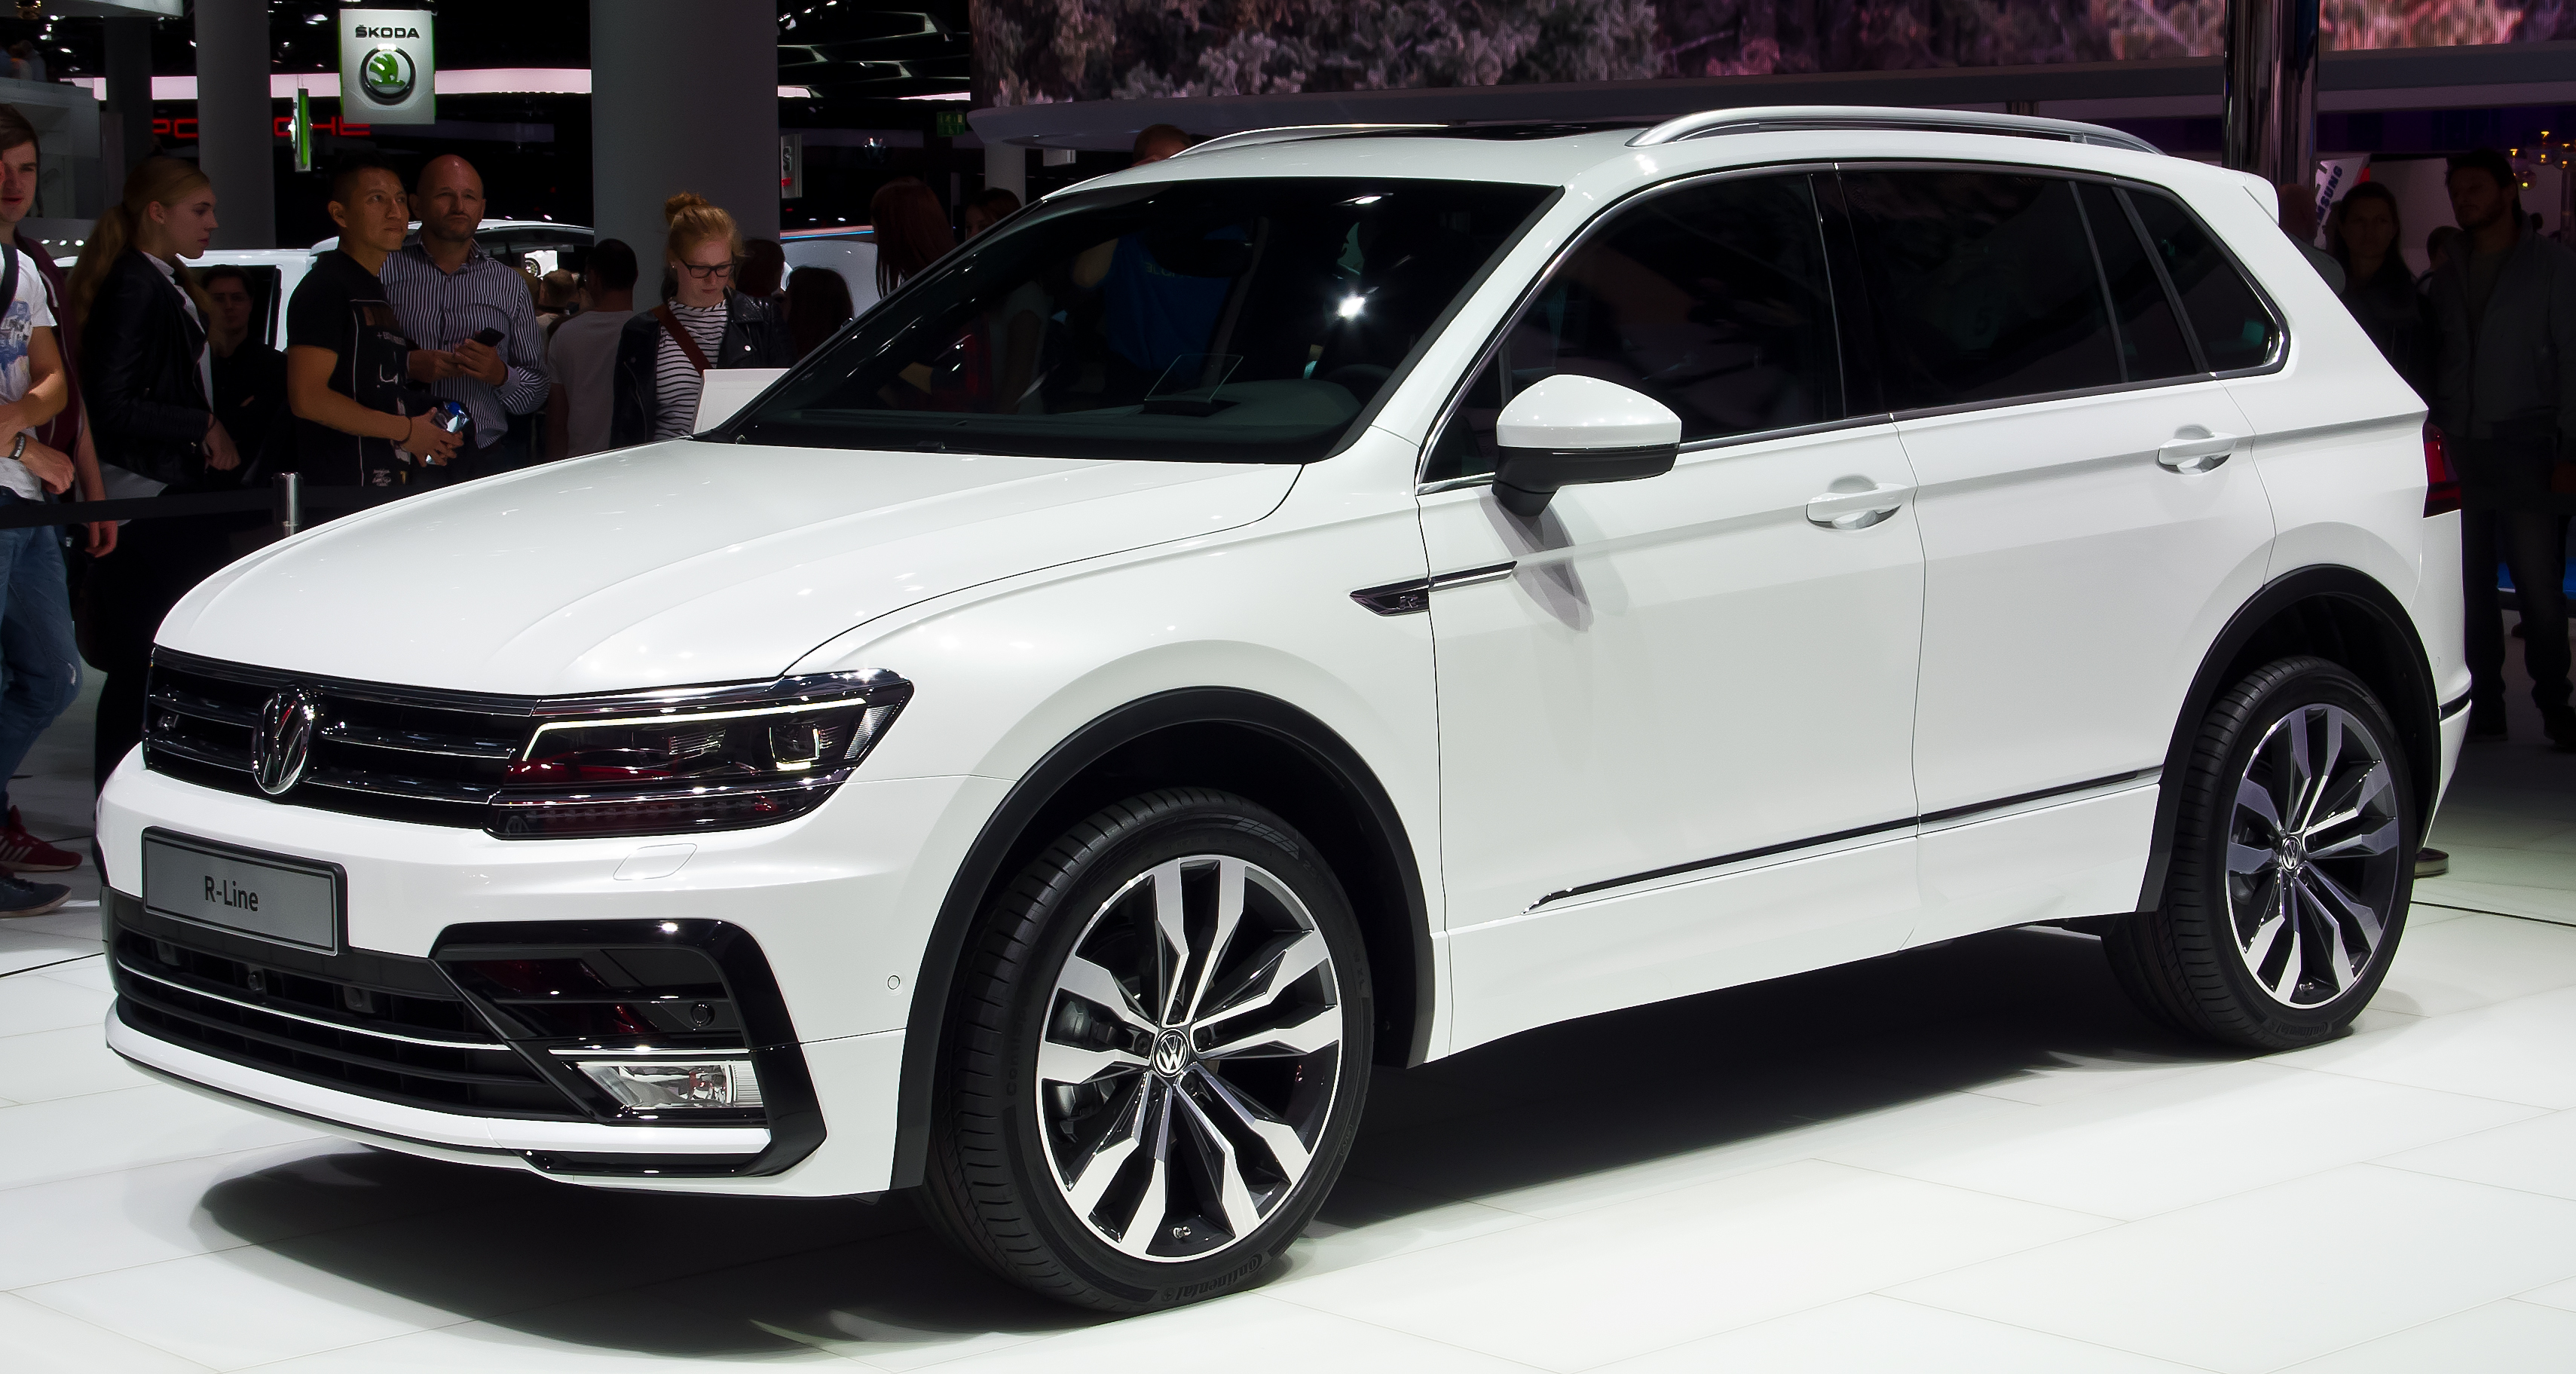 file vw tiguan 2 0 tdi 4motion r line ii frontansicht 1 19 september 2015. Black Bedroom Furniture Sets. Home Design Ideas